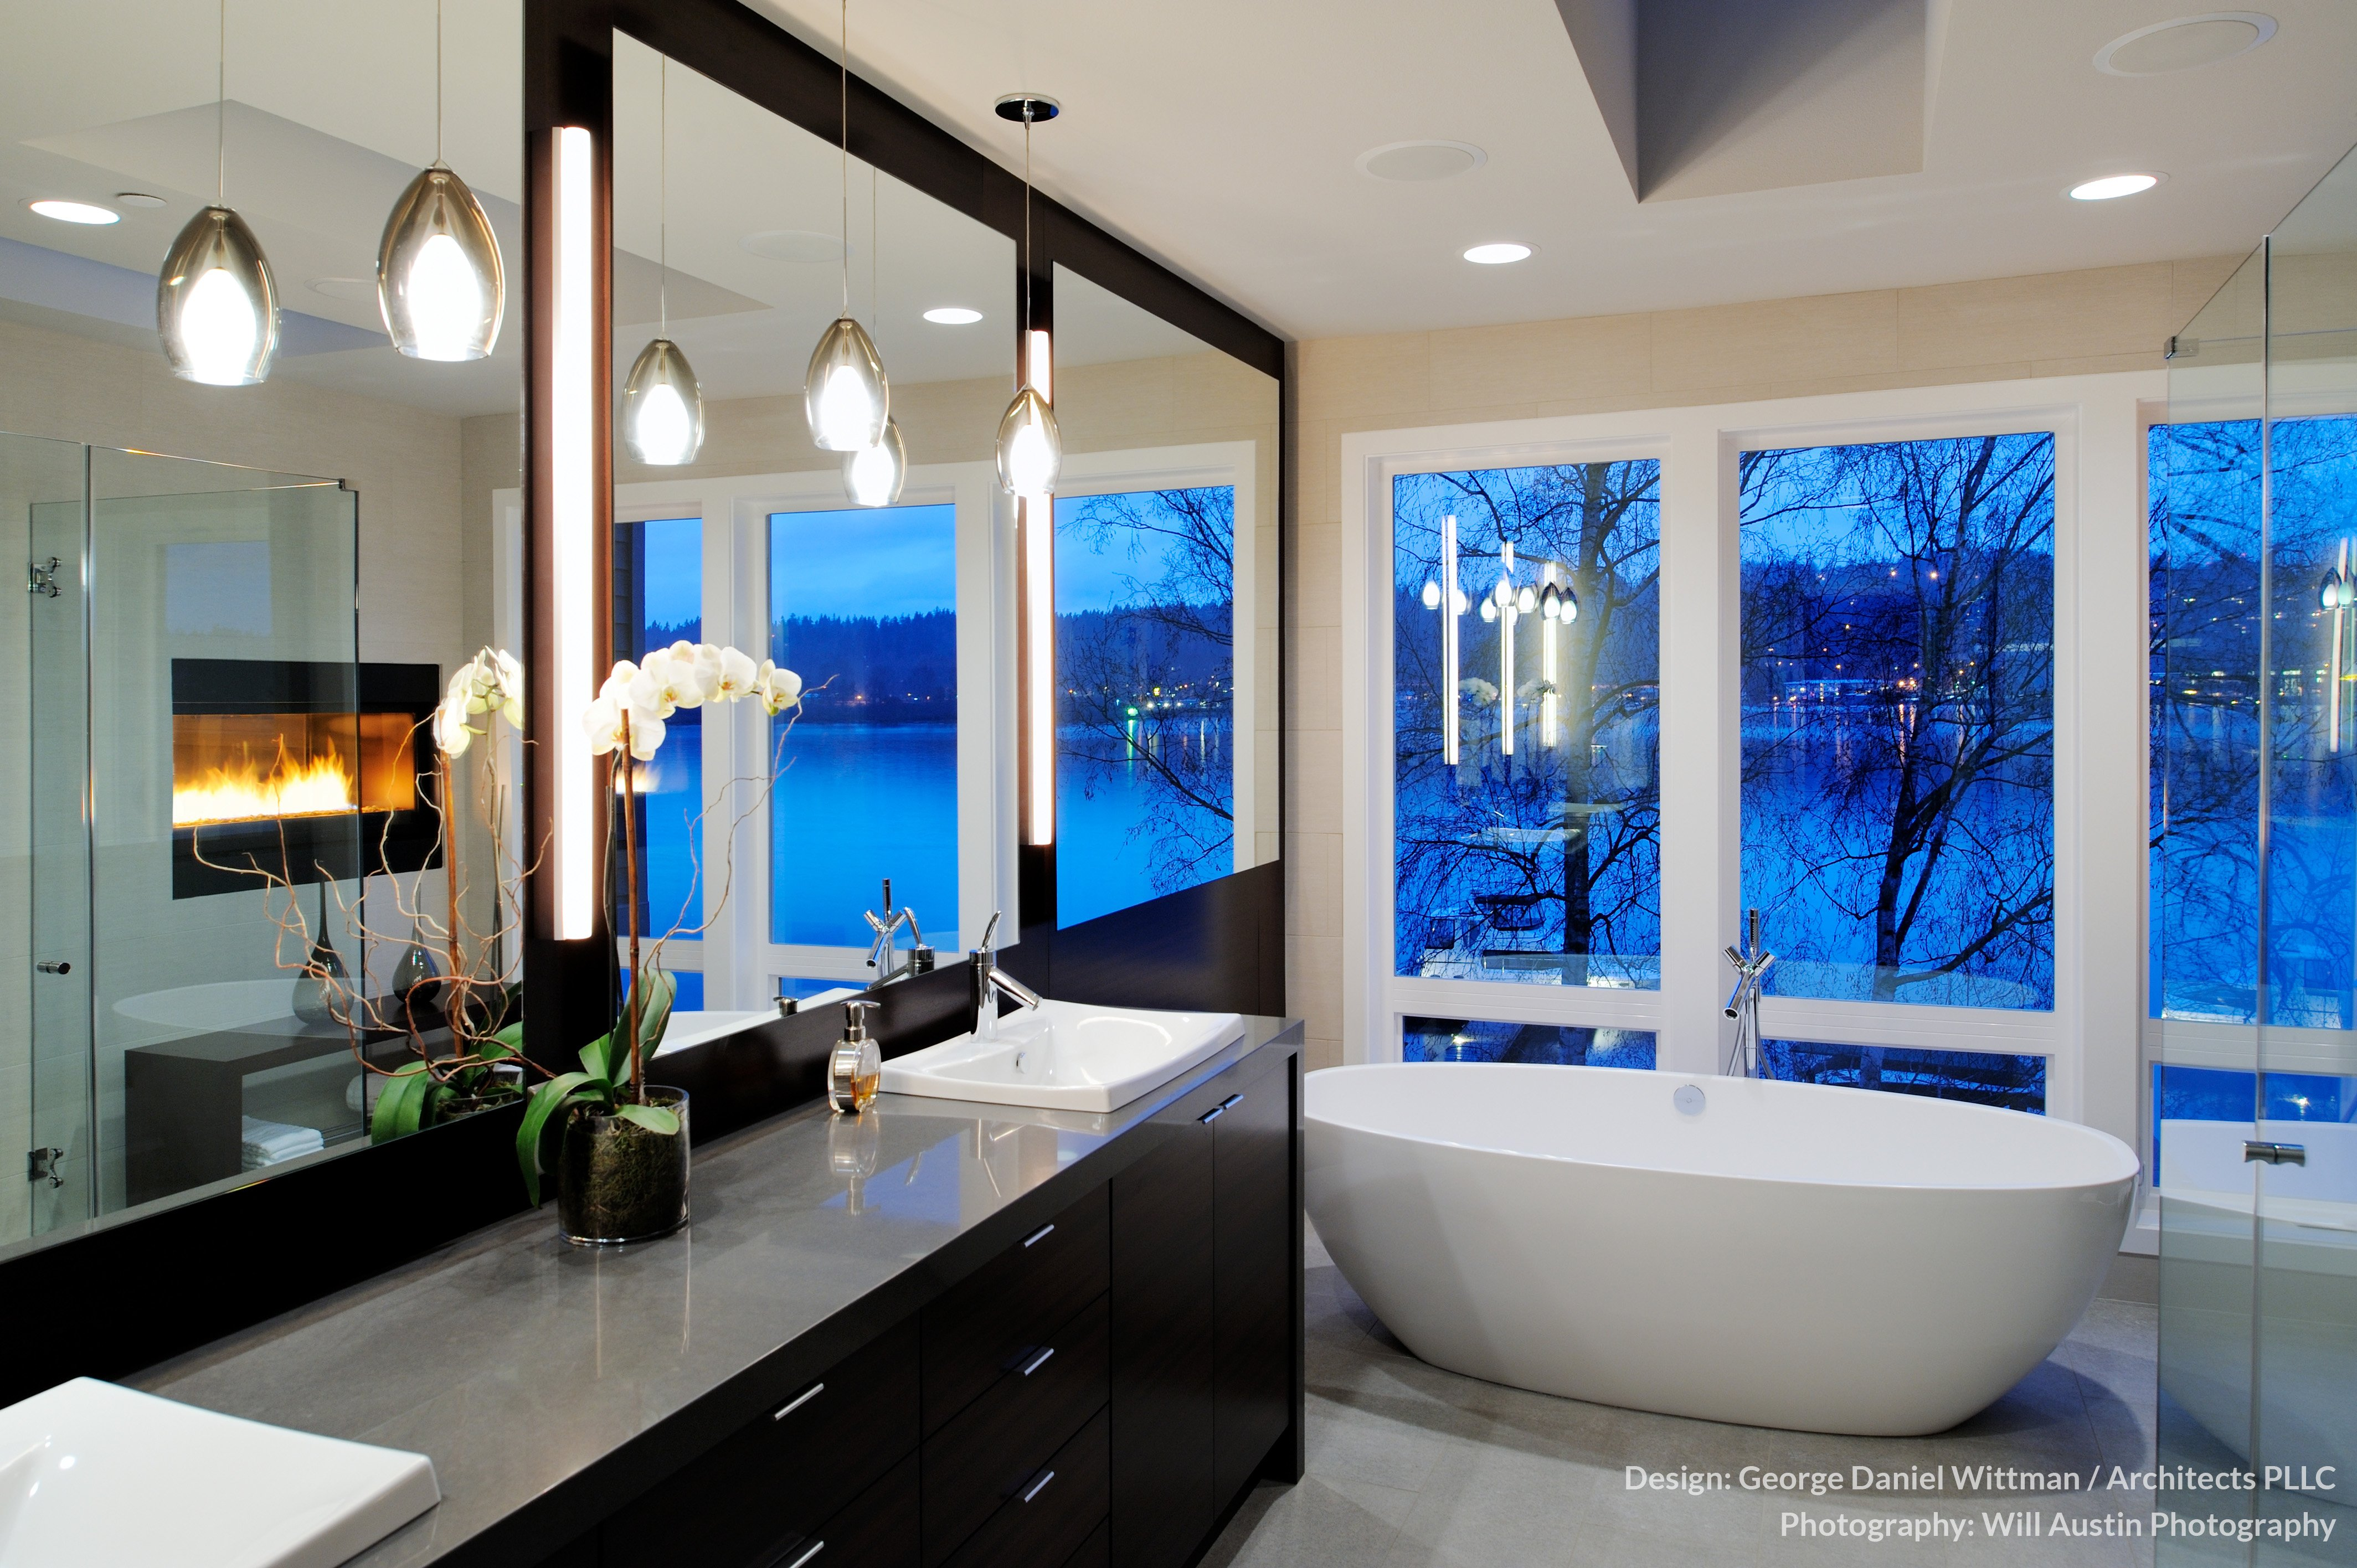 The primary bath houses a large pedestal tub with expansive views over the water via full height windows. All-glass shower enclosure can be seen at right.